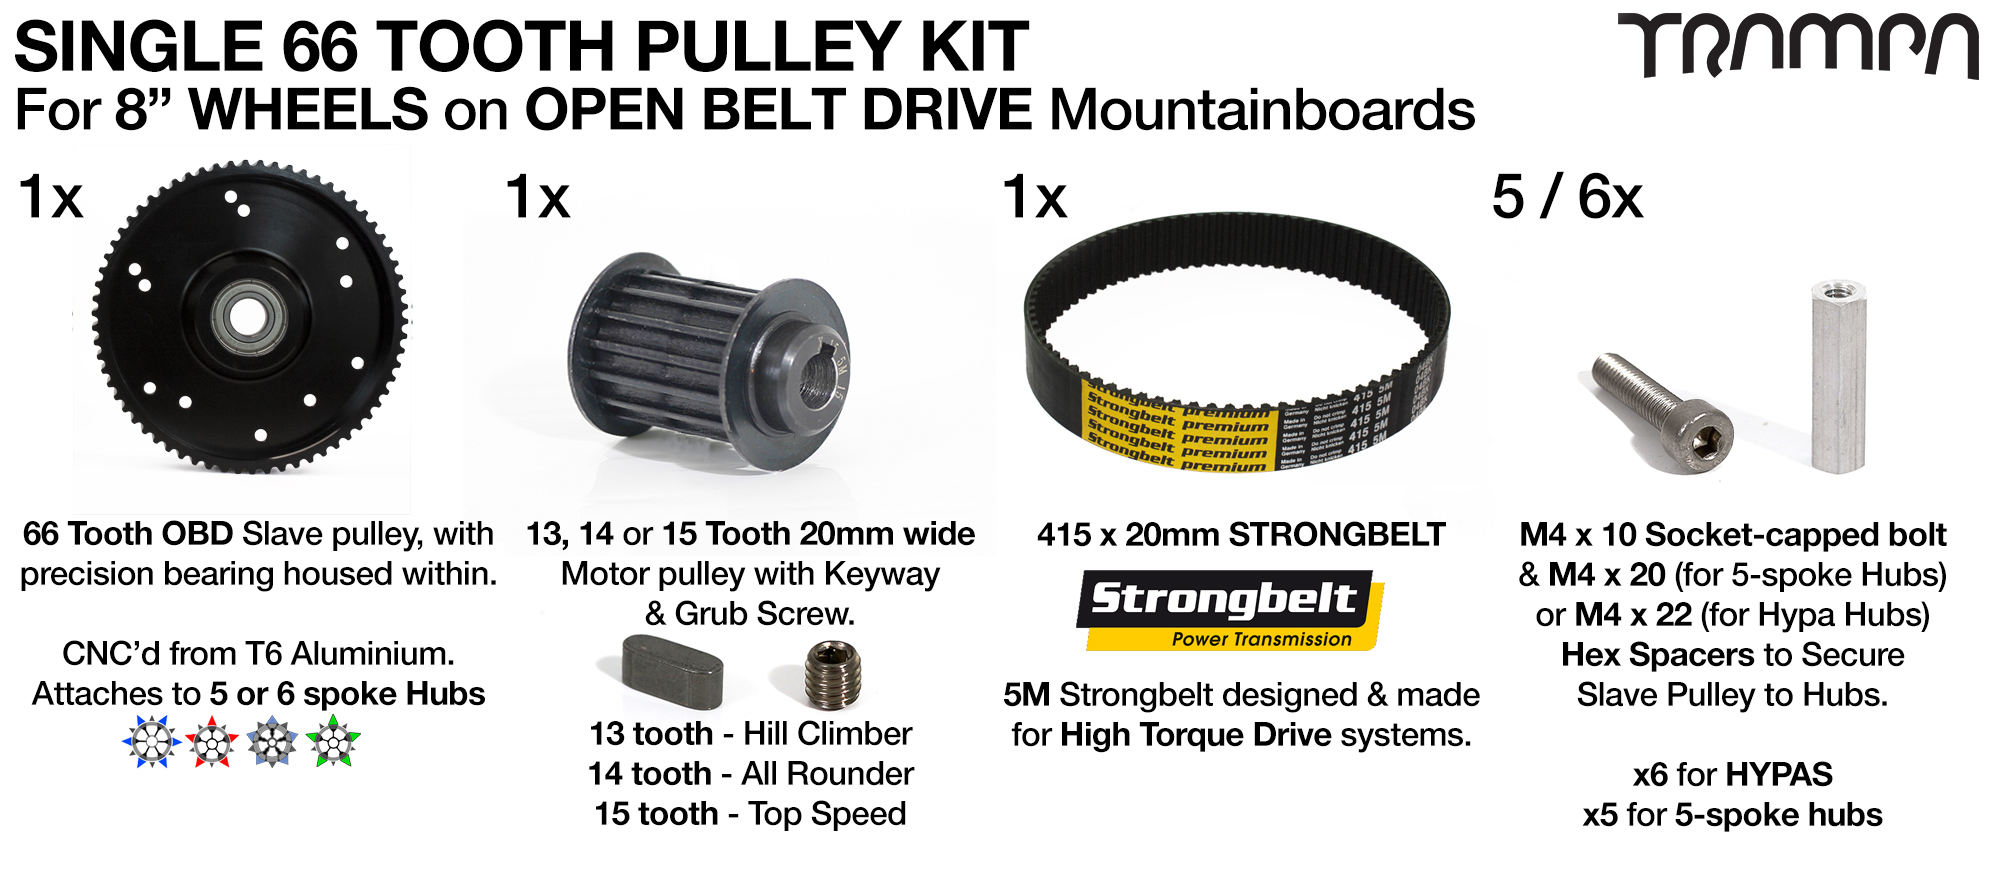 66T Open Belt Drive 8 Inch Wheel 66 Tooth Pulley Kit with 415mm x 20mm Belt for 8 Inch Wheels - SINGLE